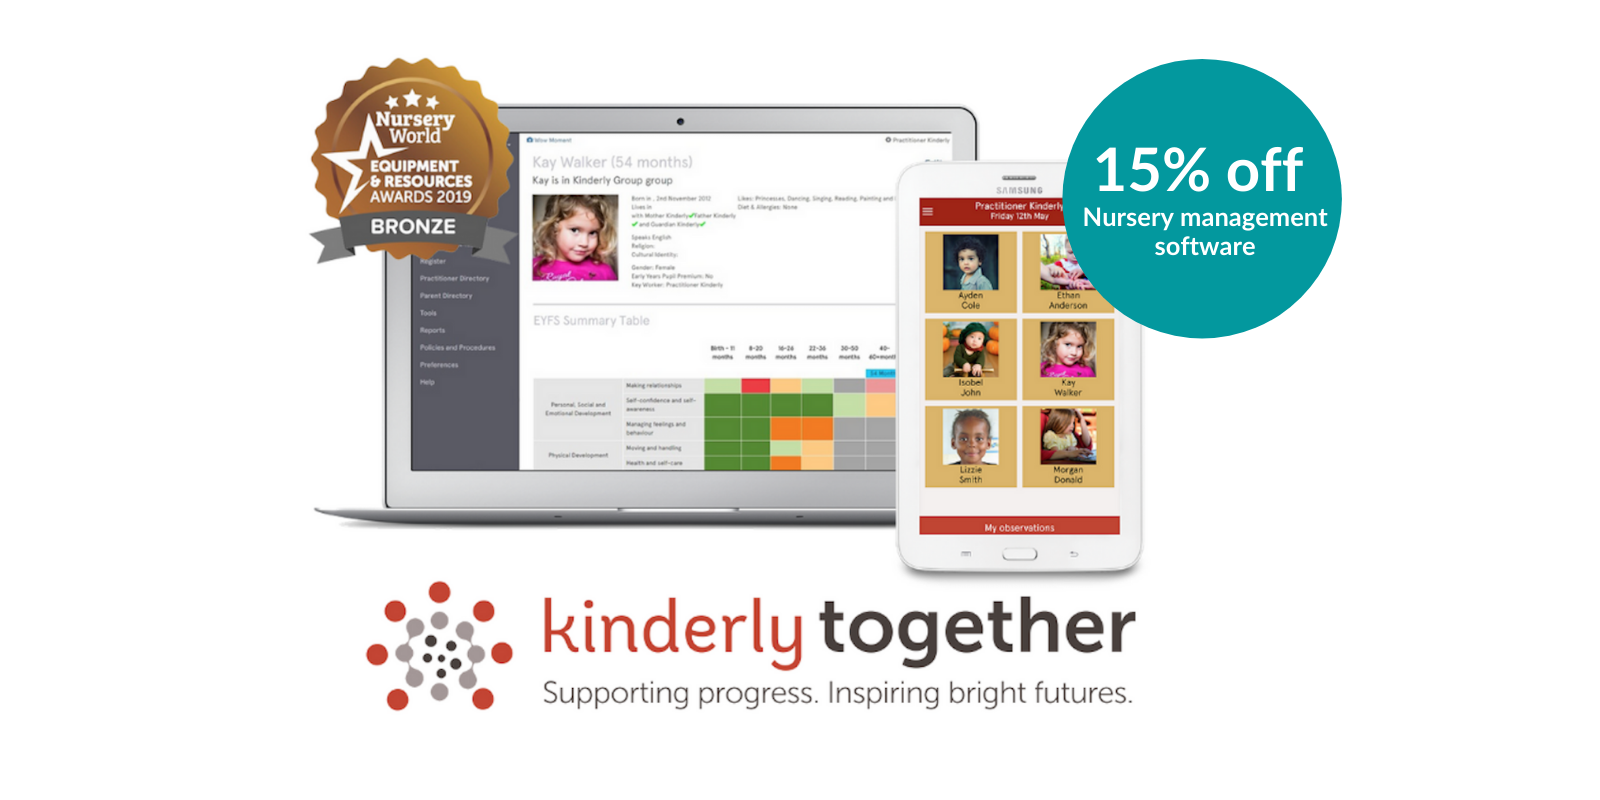 kinderly together show offer